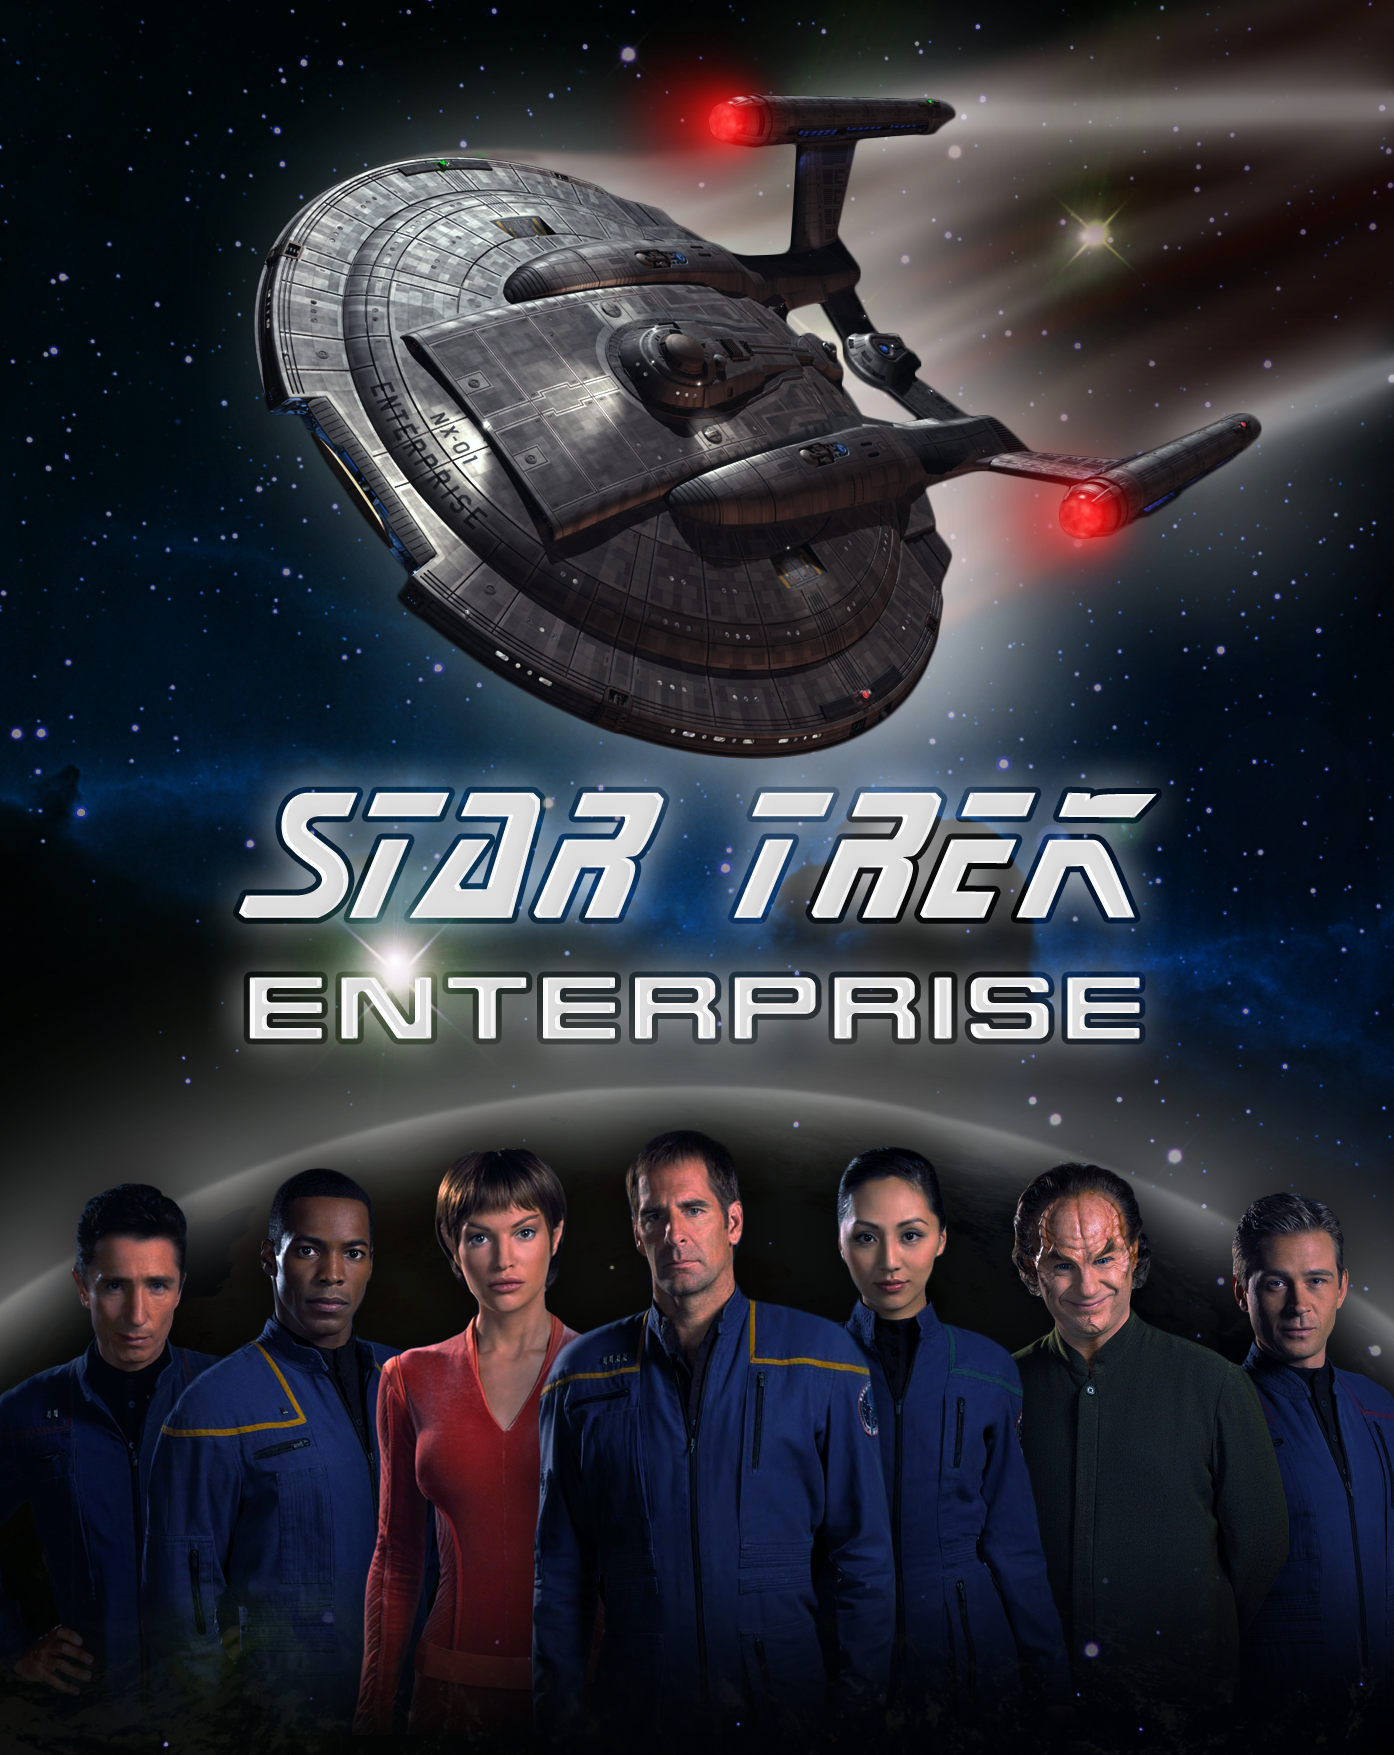 Image result for star trek serie enterprise poster